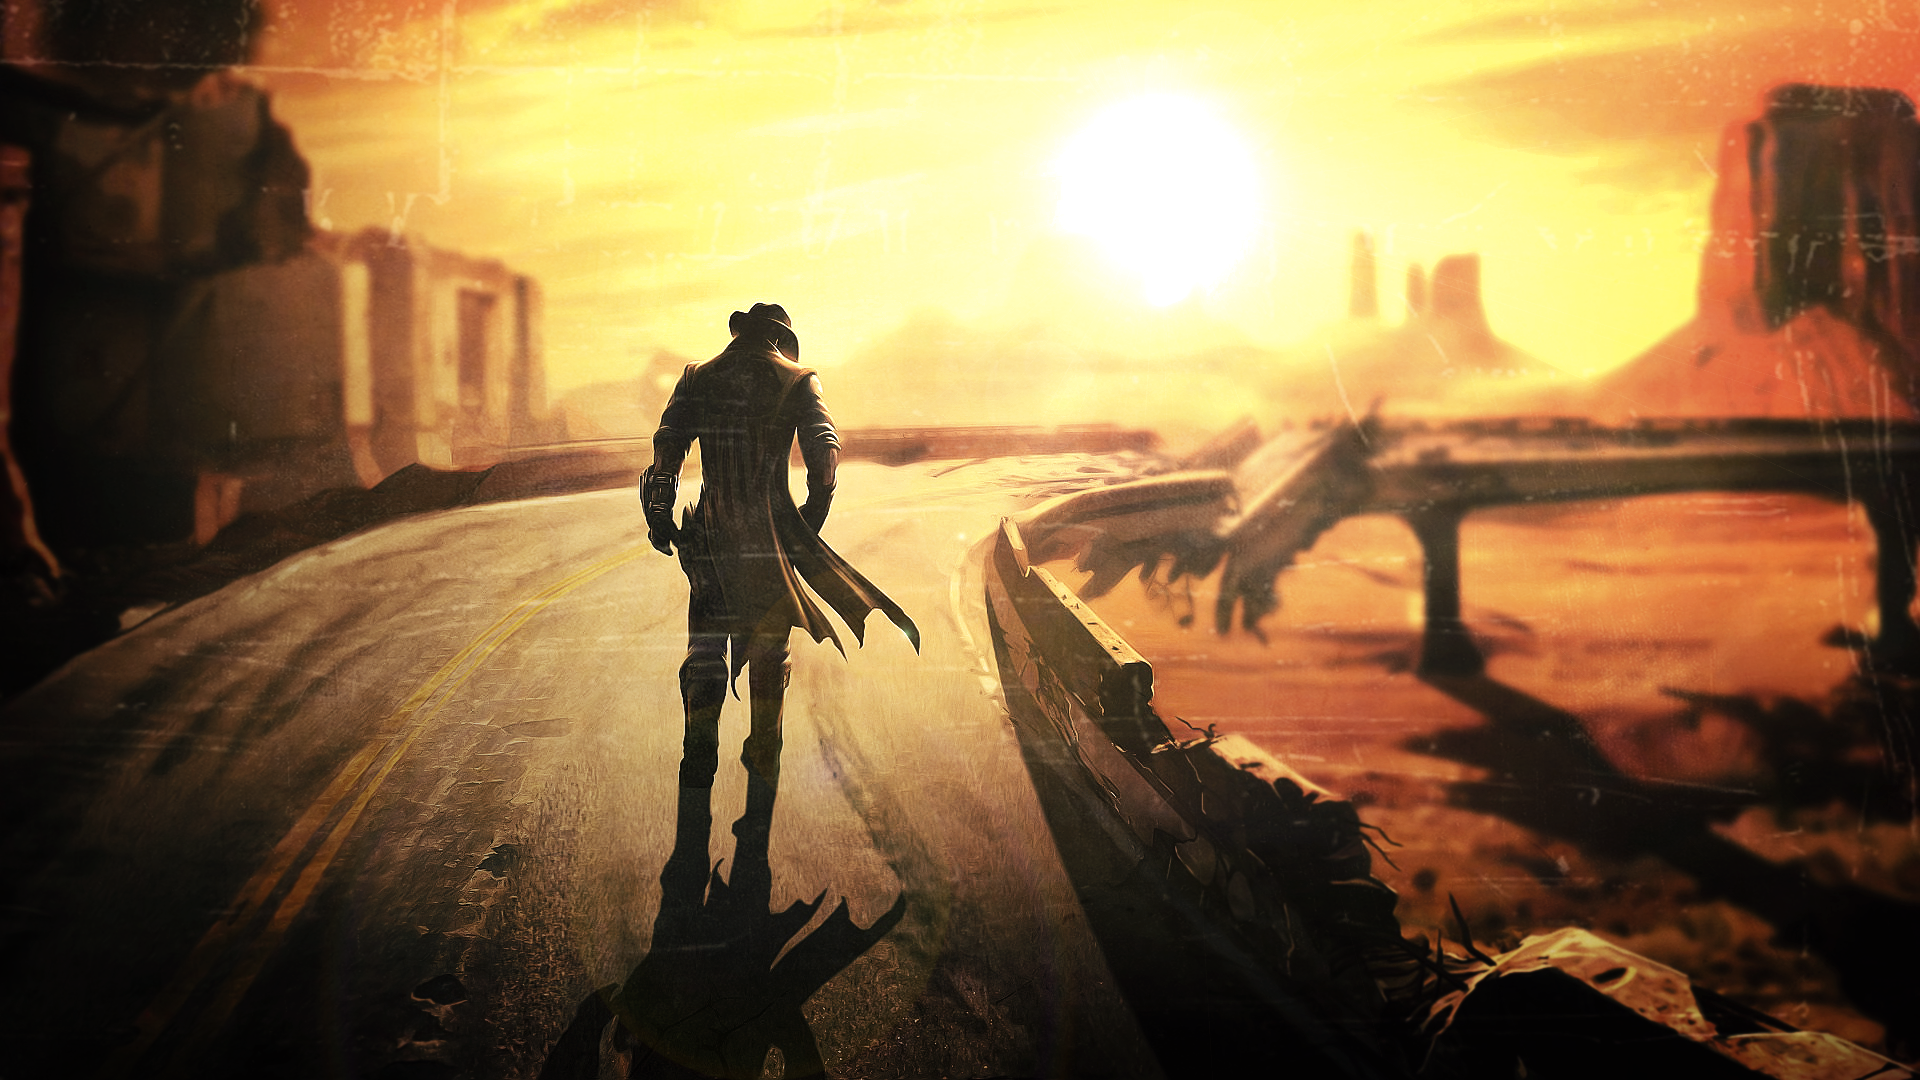 fallout new vegas a2 - hd desktop wallpapers | 4k hd